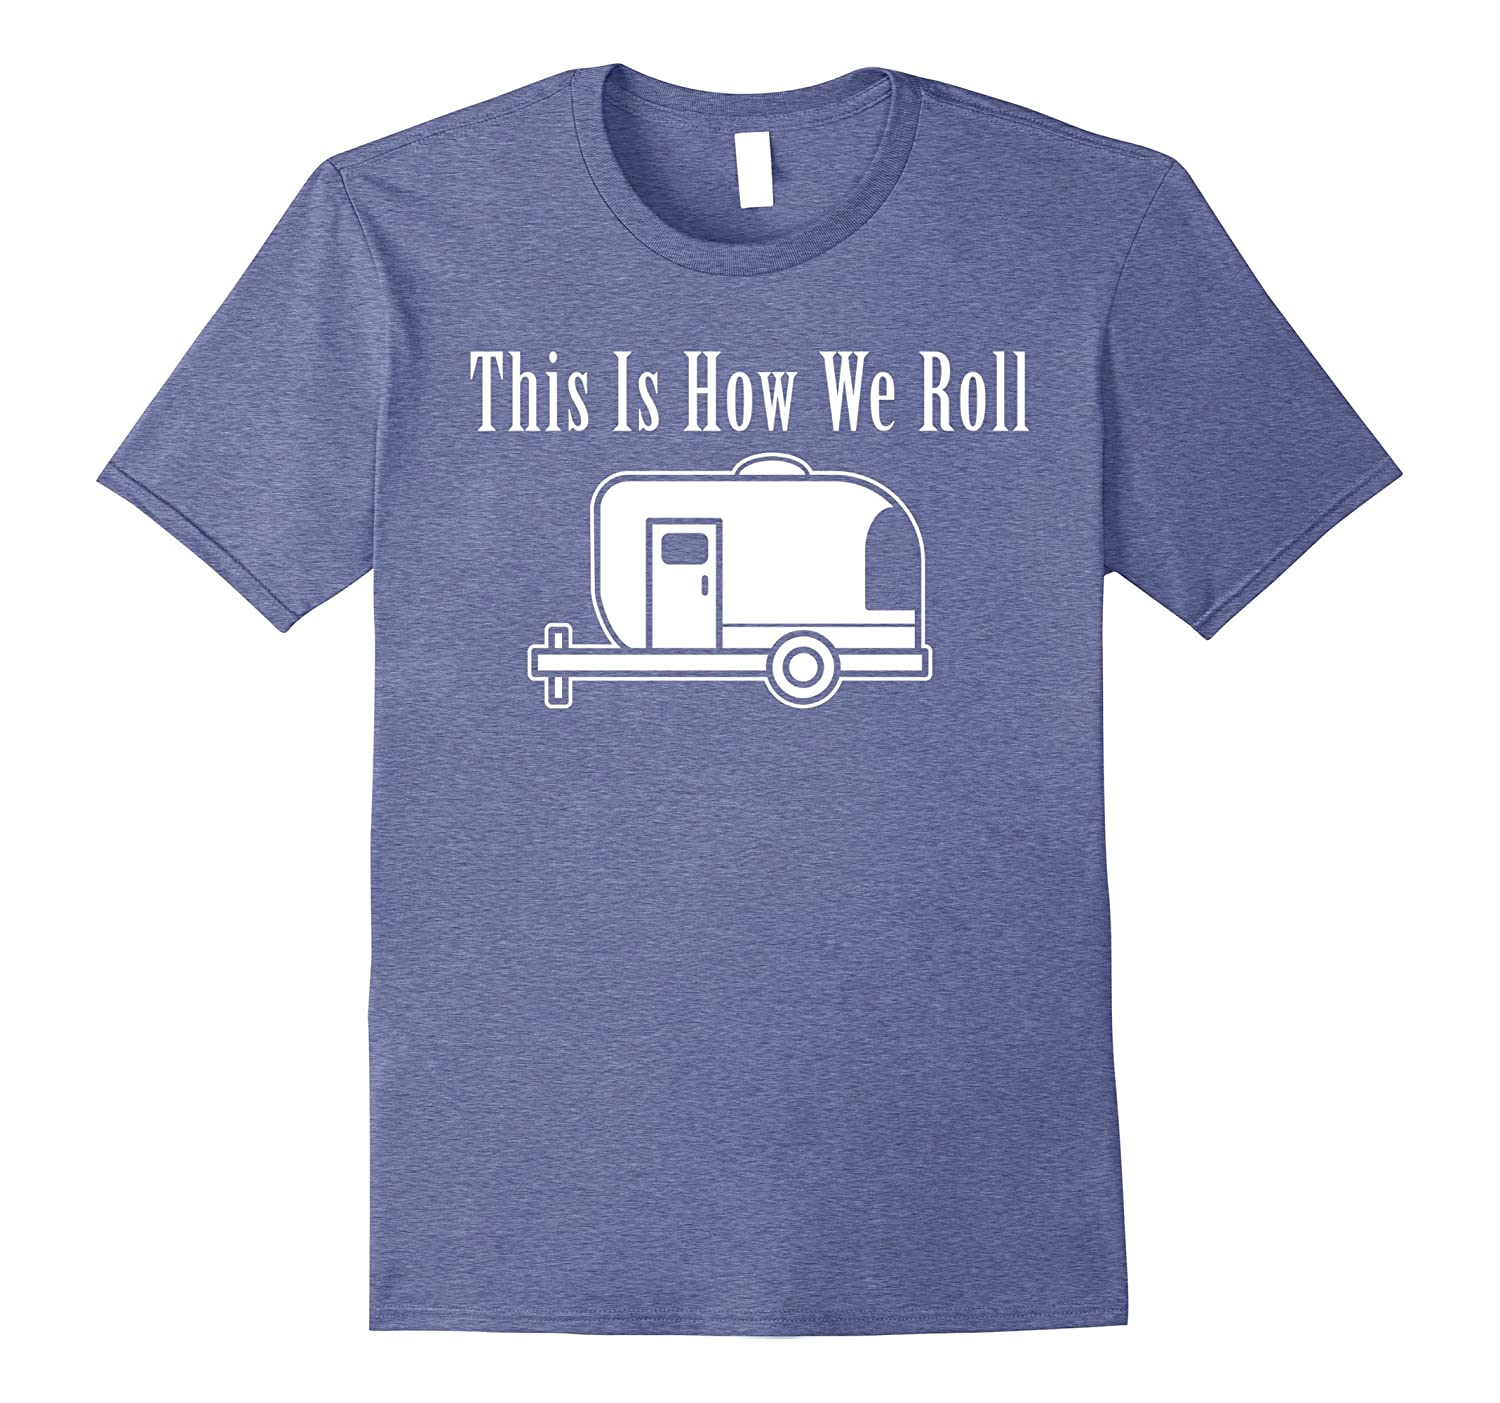 This Is How We Roll Camping T-shirt For Camp Lover-T-Shirt